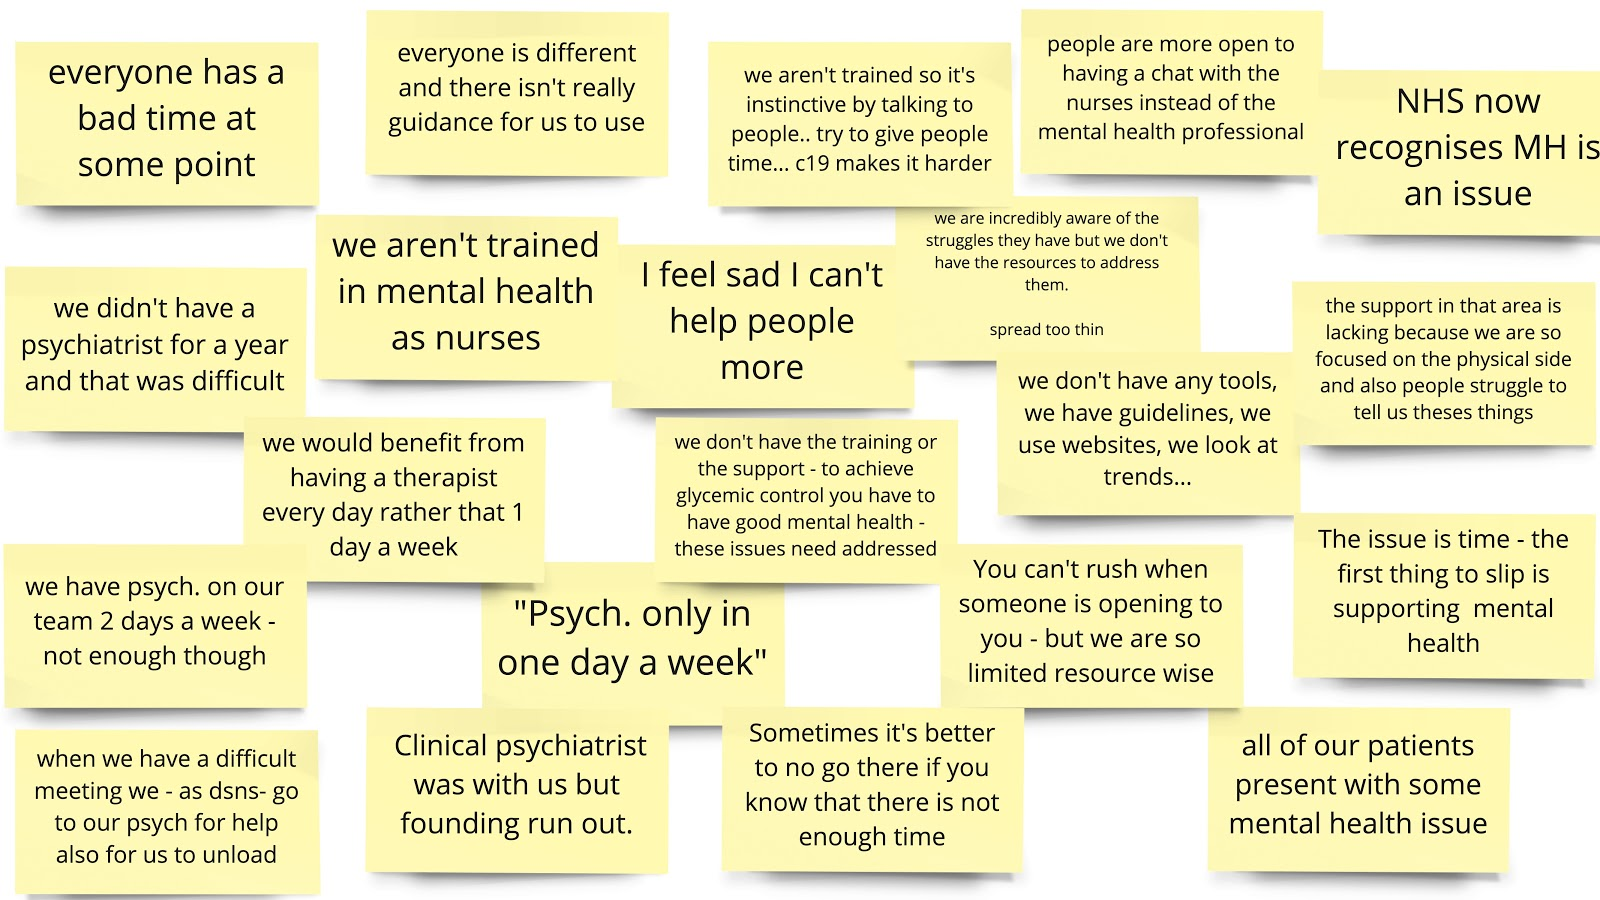 Quotes from Diabetes Specialized Nurses when asked how they addressed the mental health needs of their patients.